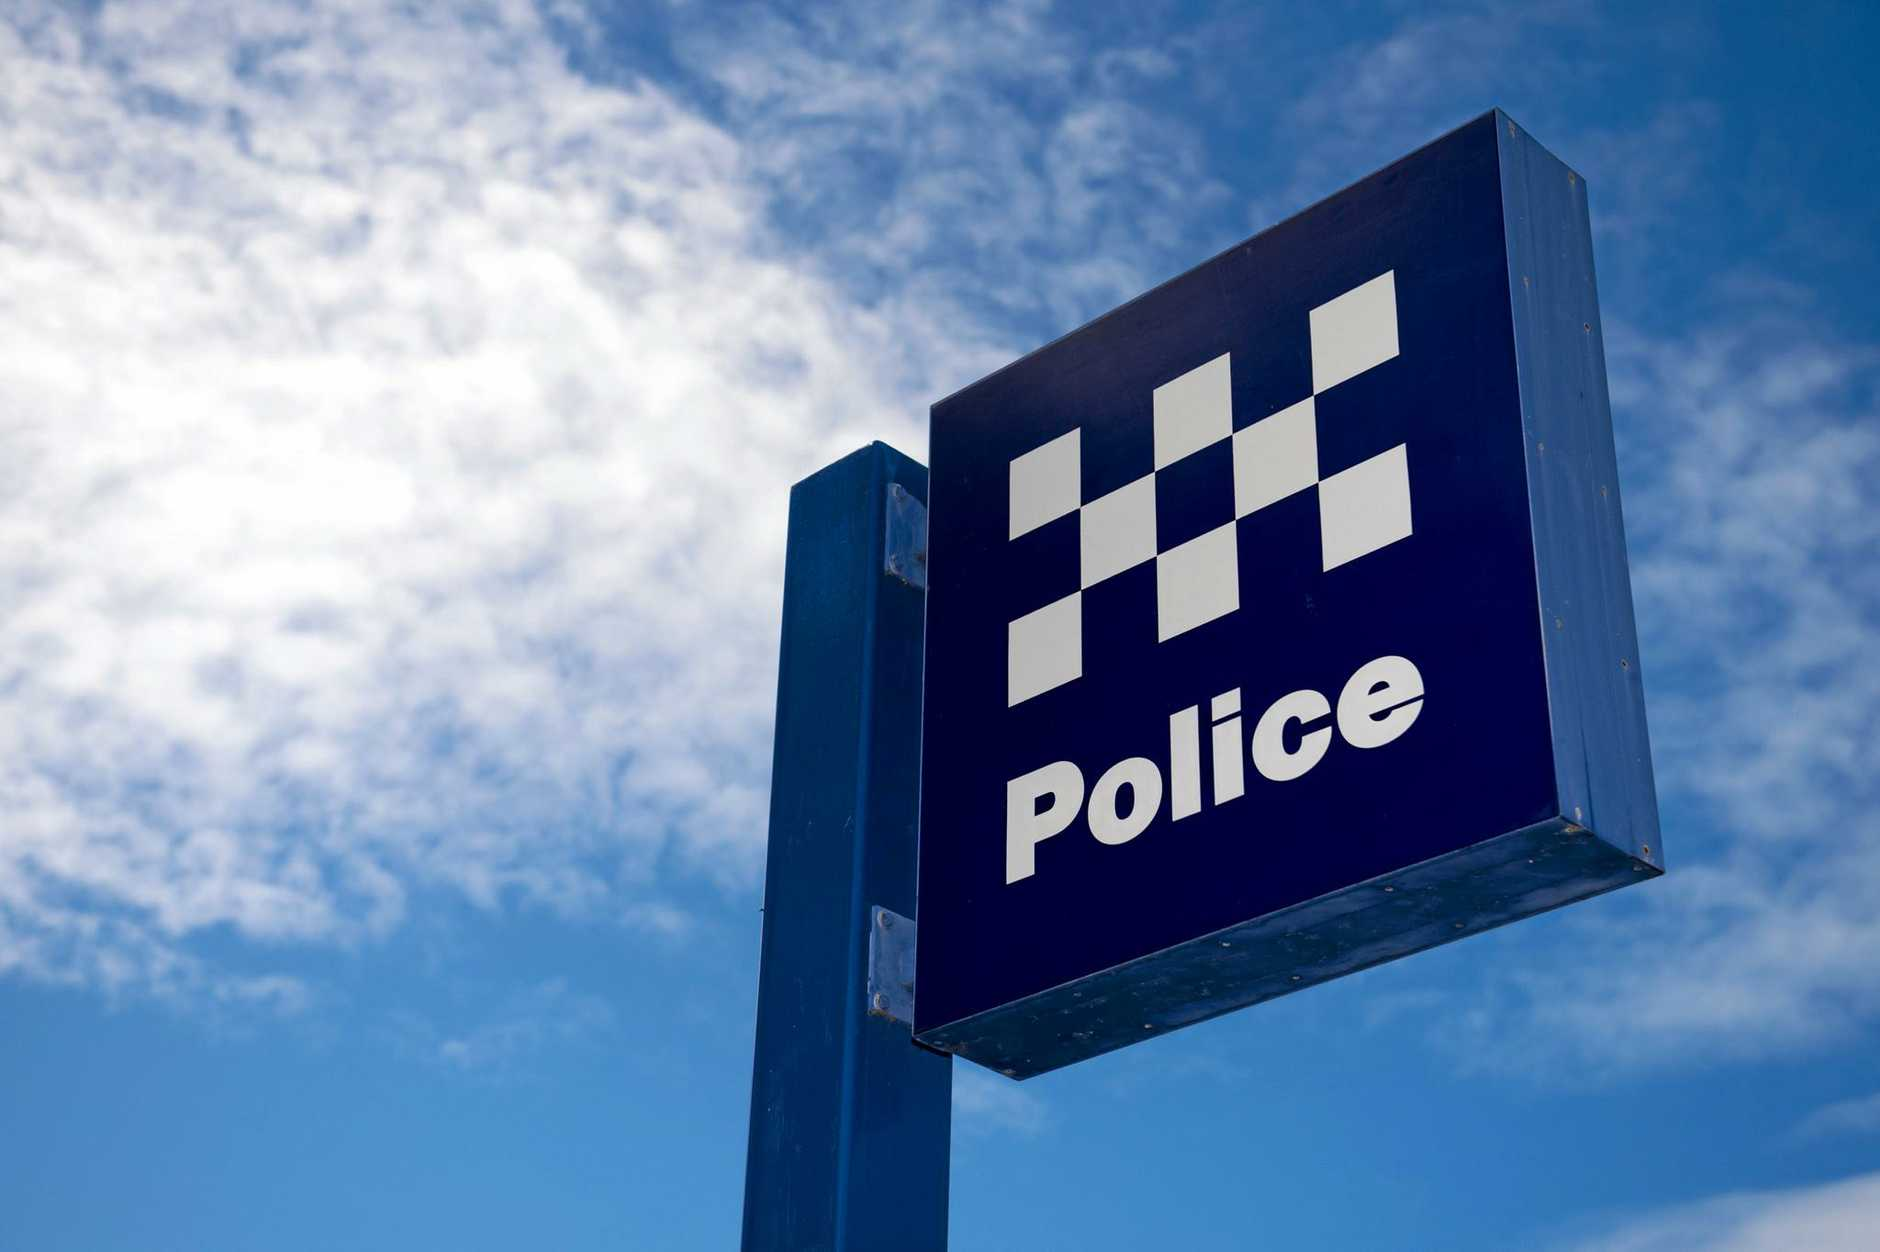 Crowley was disqualified from driving for five months and fined $500.